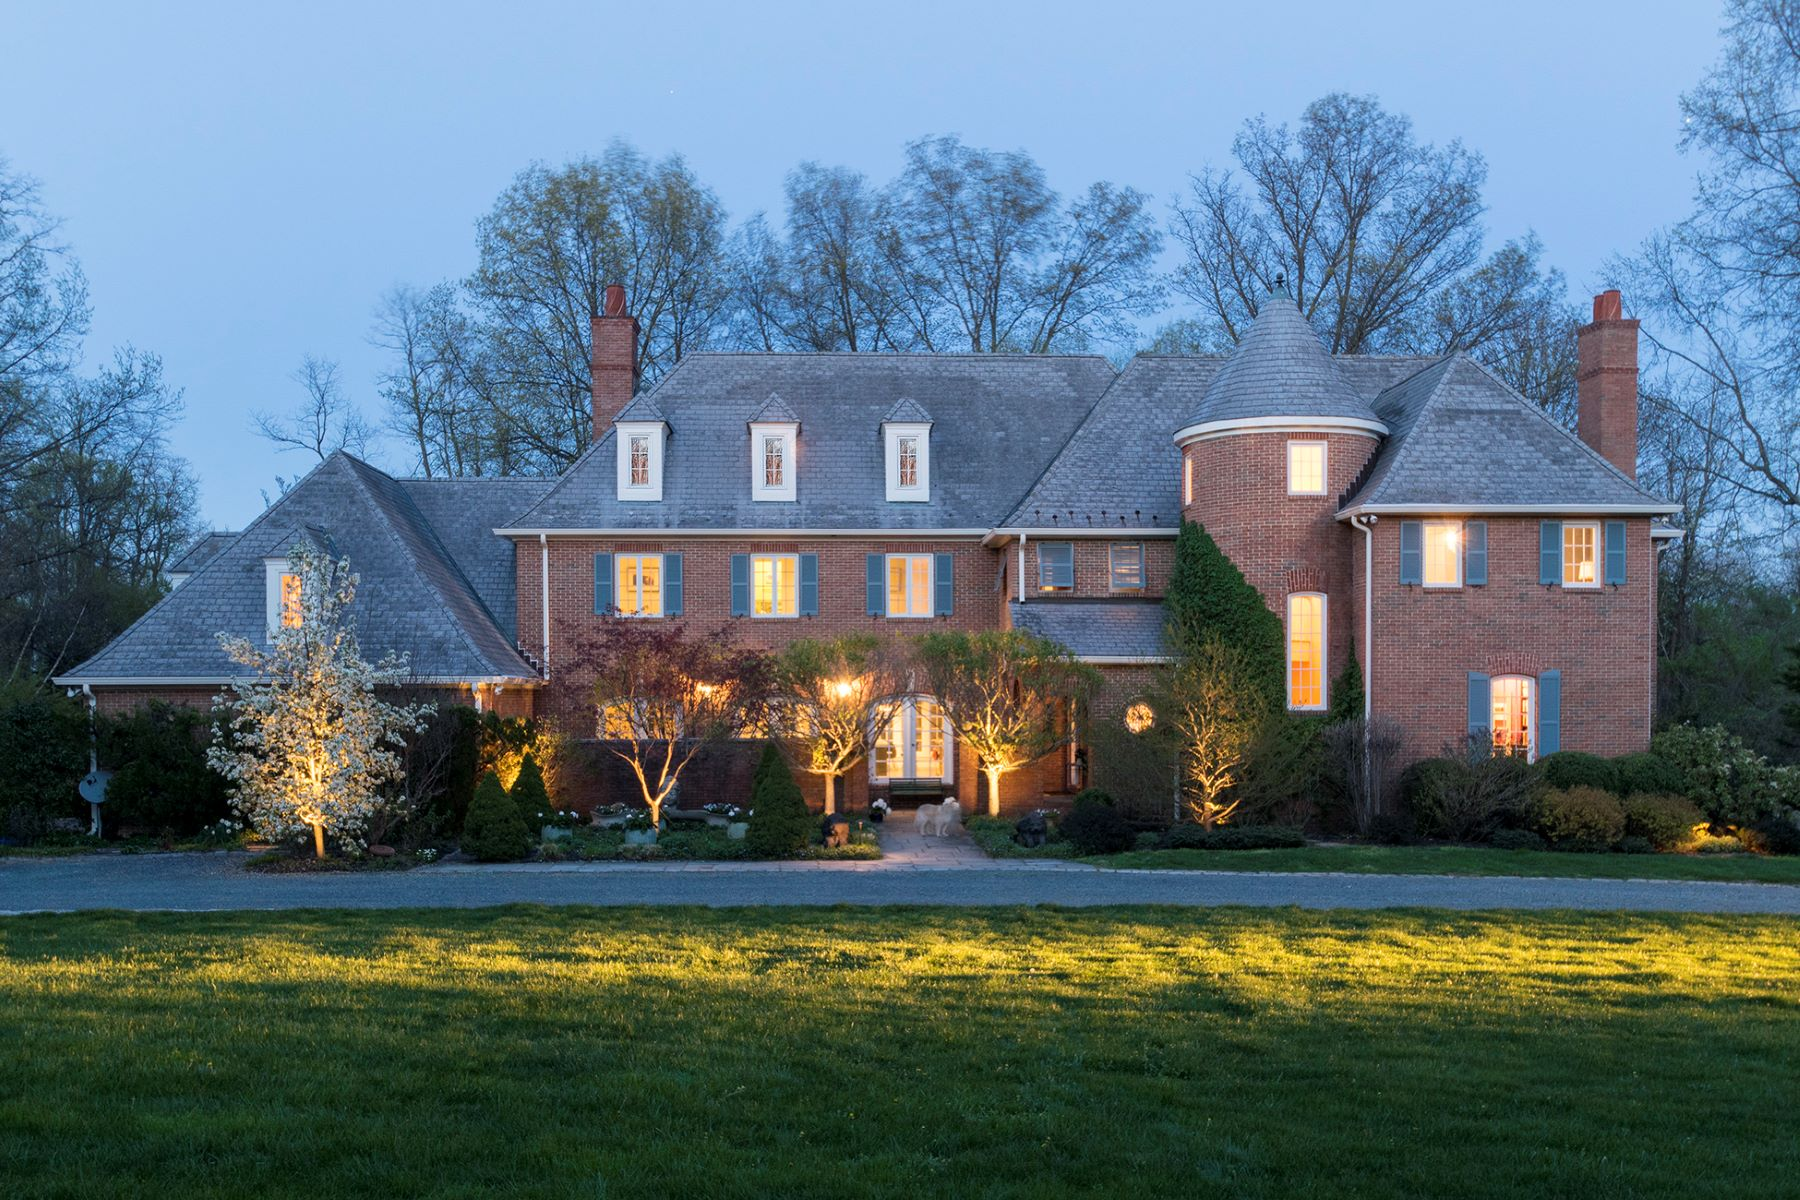 Elegant Manor House in a Park-Like Setting - Lawrence Township 3 Landfall Lane, Princeton, New Jersey 08540 United States